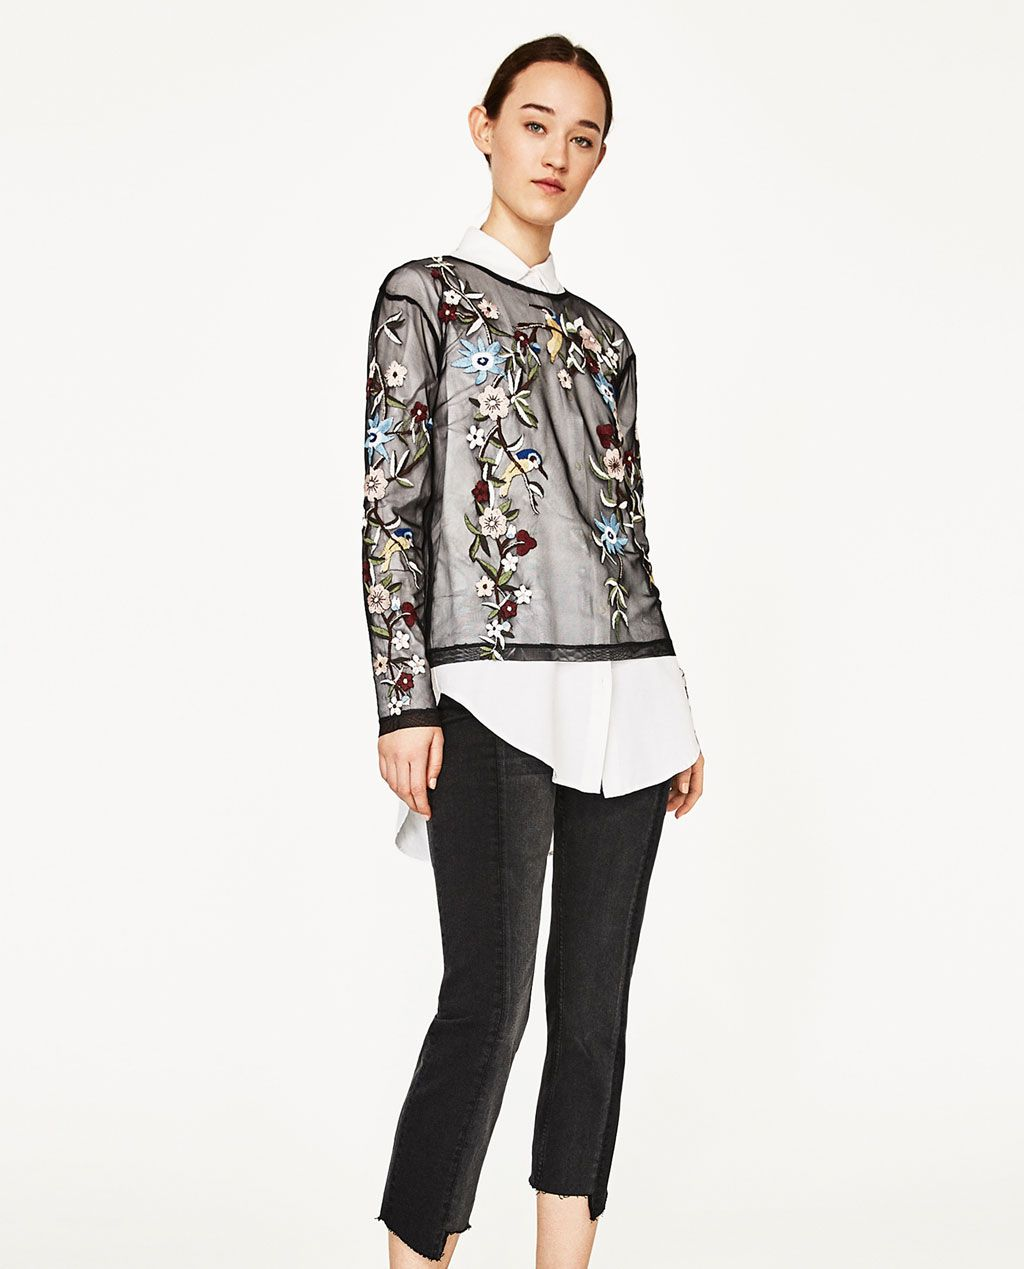 b96f62852d ZARA - WOMAN - EMBROIDERED TULLE T-SHIRT Camisas Mujer Zara